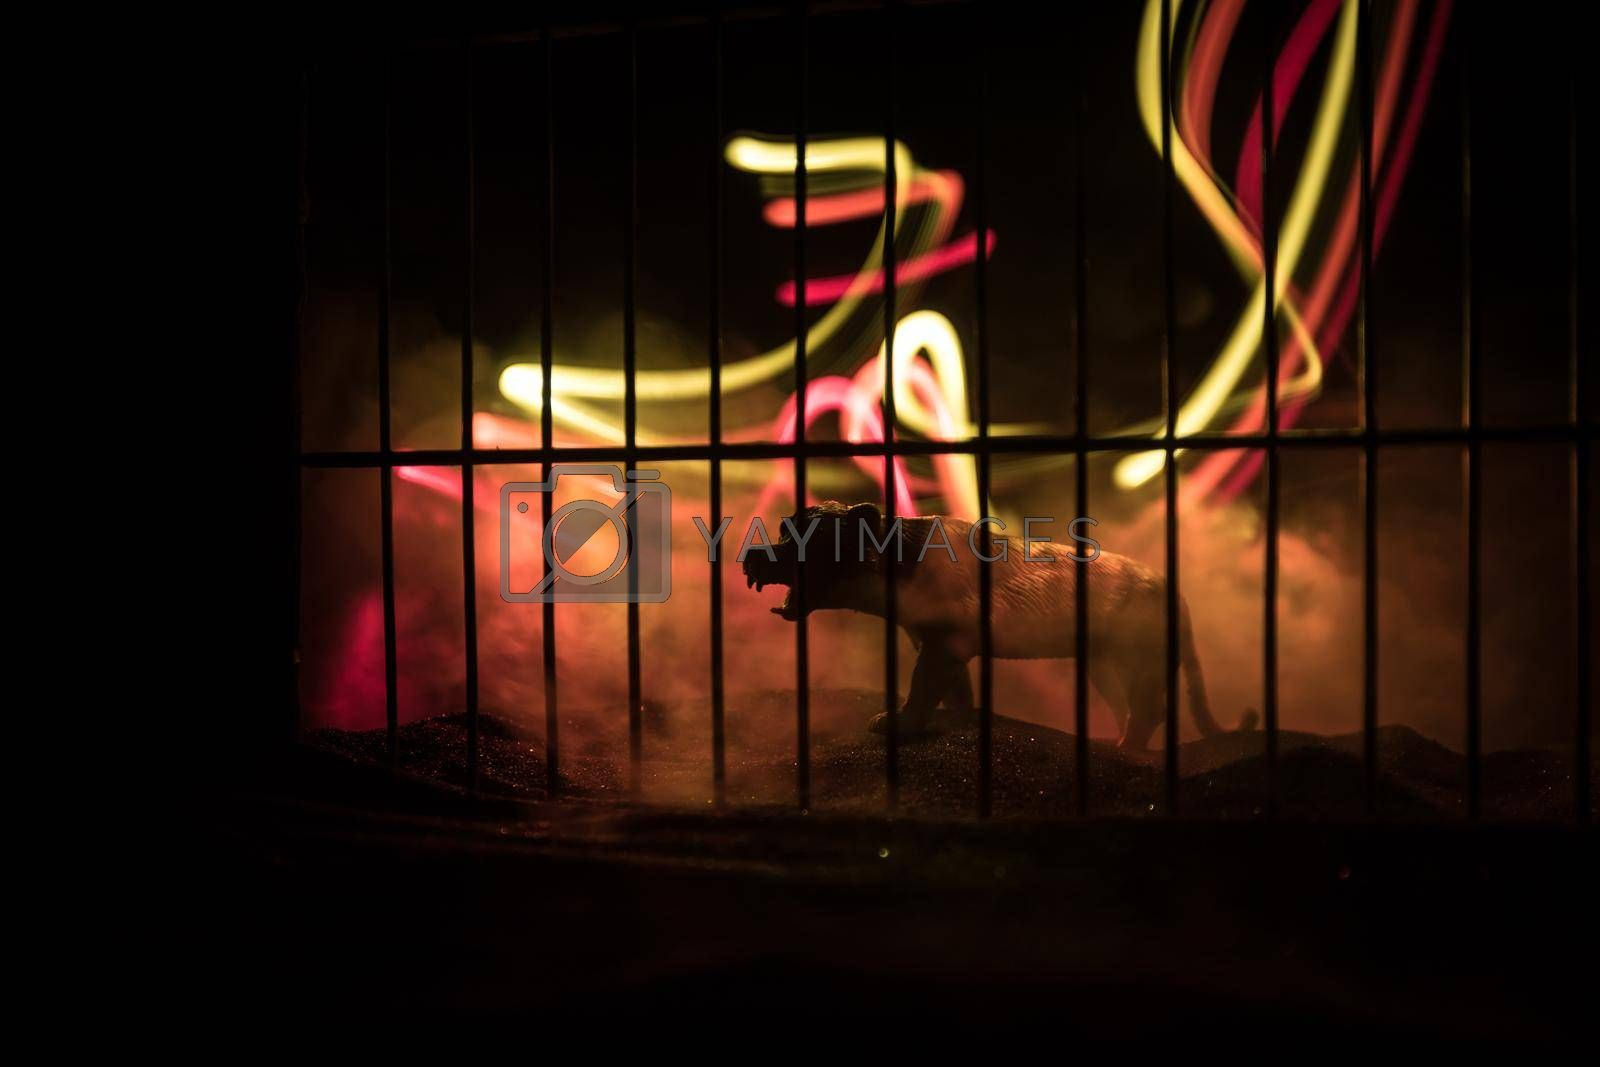 Silhouette of a tiger miniature standing in a zoo cage dreams of freedom. Creative decoration with colorful backlight with fog. Selective focus